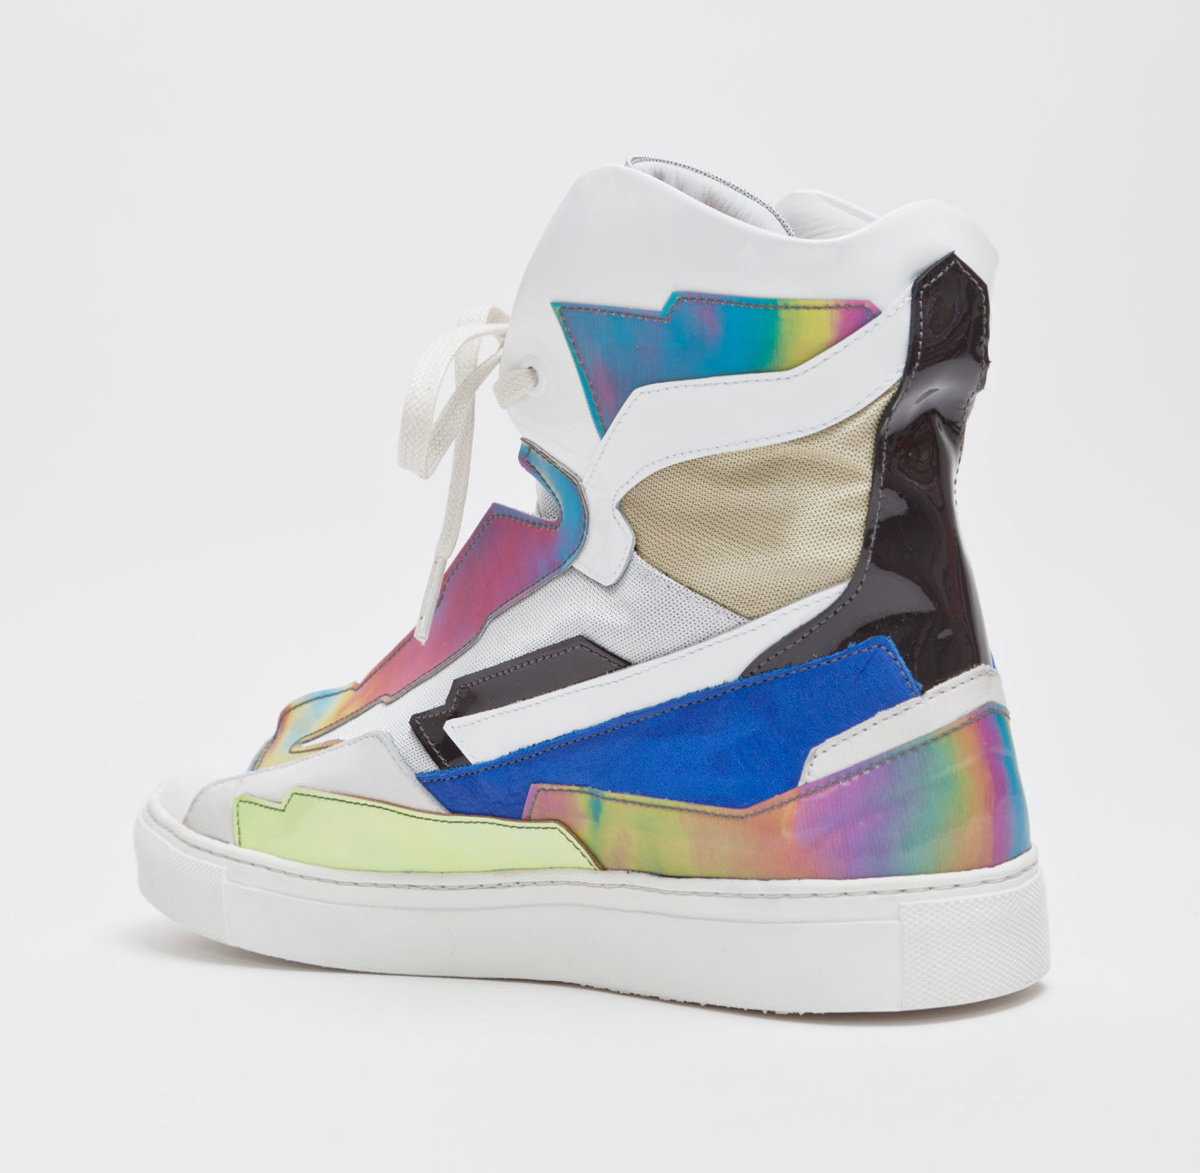 f8b9443256df ... Raf Simons presents a new colorway of the Holographic Space Sneaker